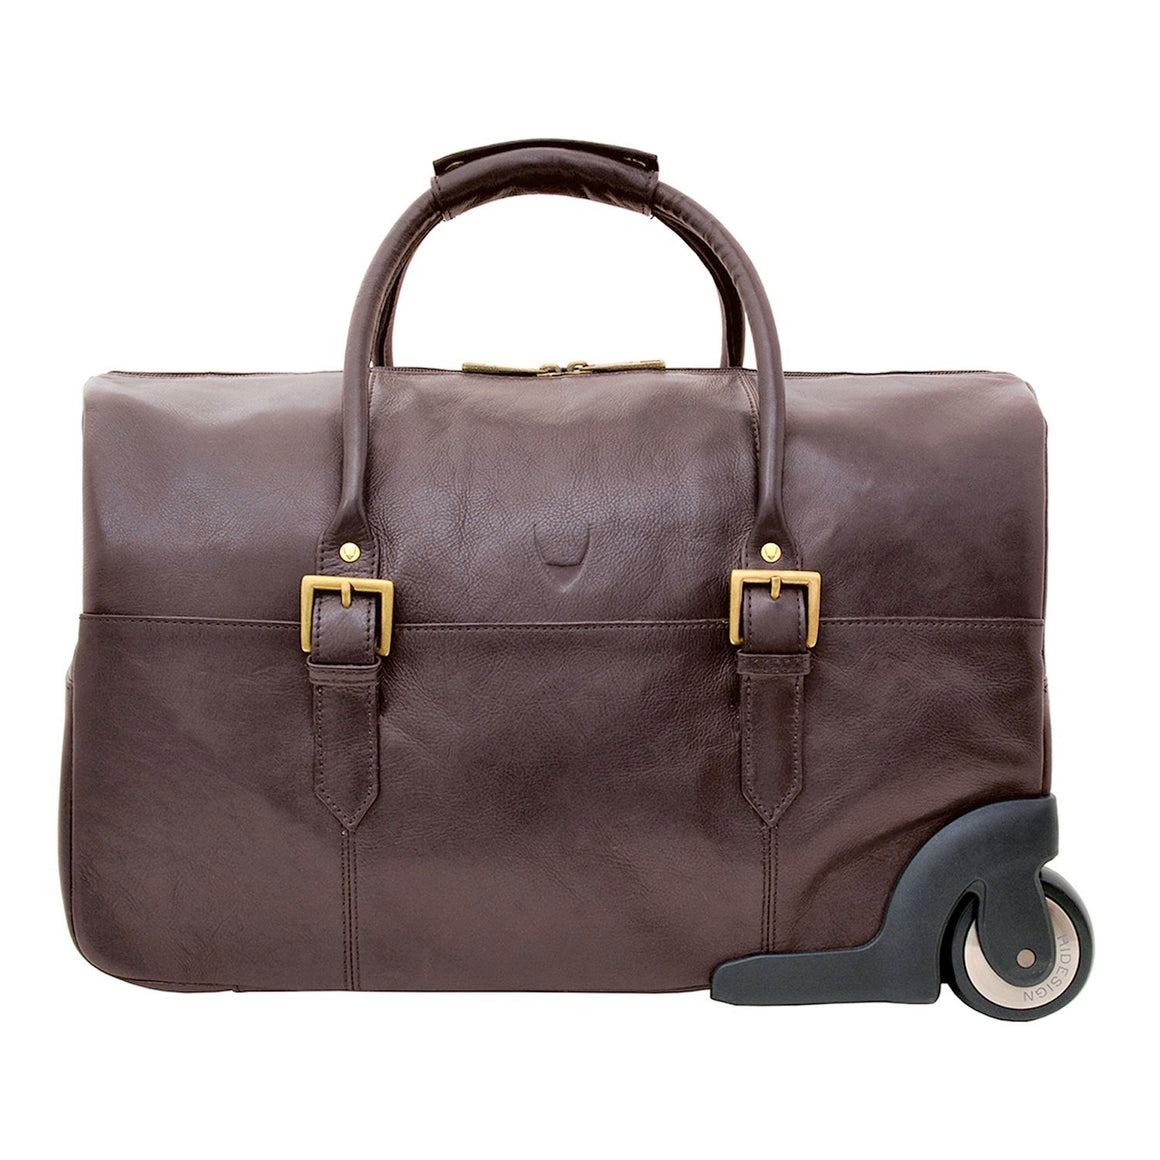 "Scully Hidesign Leather 20"" Wheeled Duffel Bag"